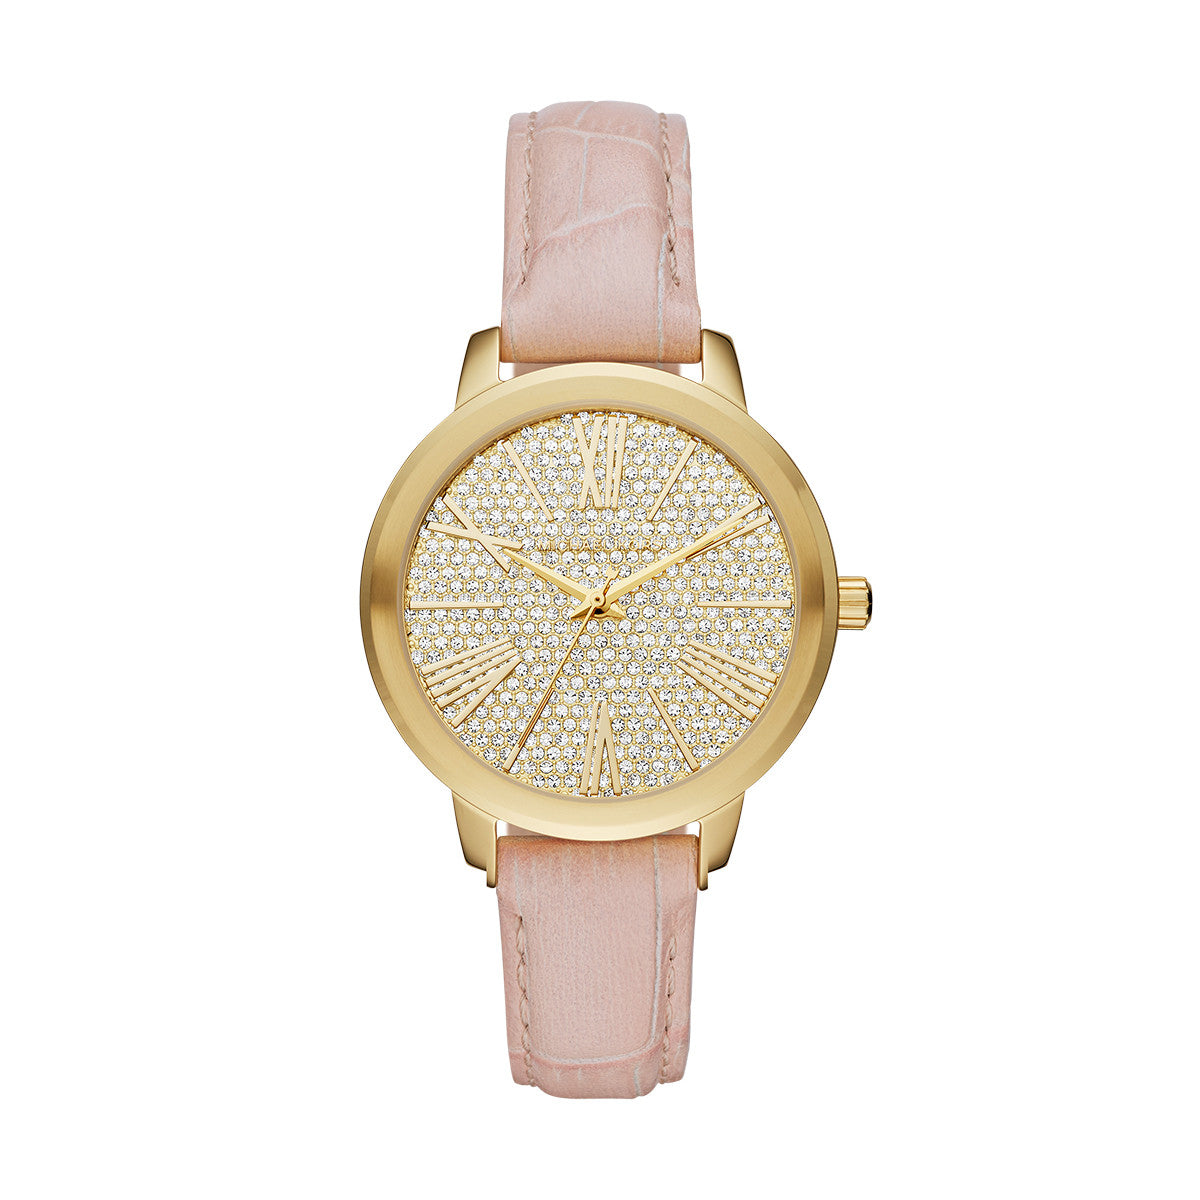 Hartman Ballet Pink Leather and Gold-Tone Stainless Steel 3 Hand Watch